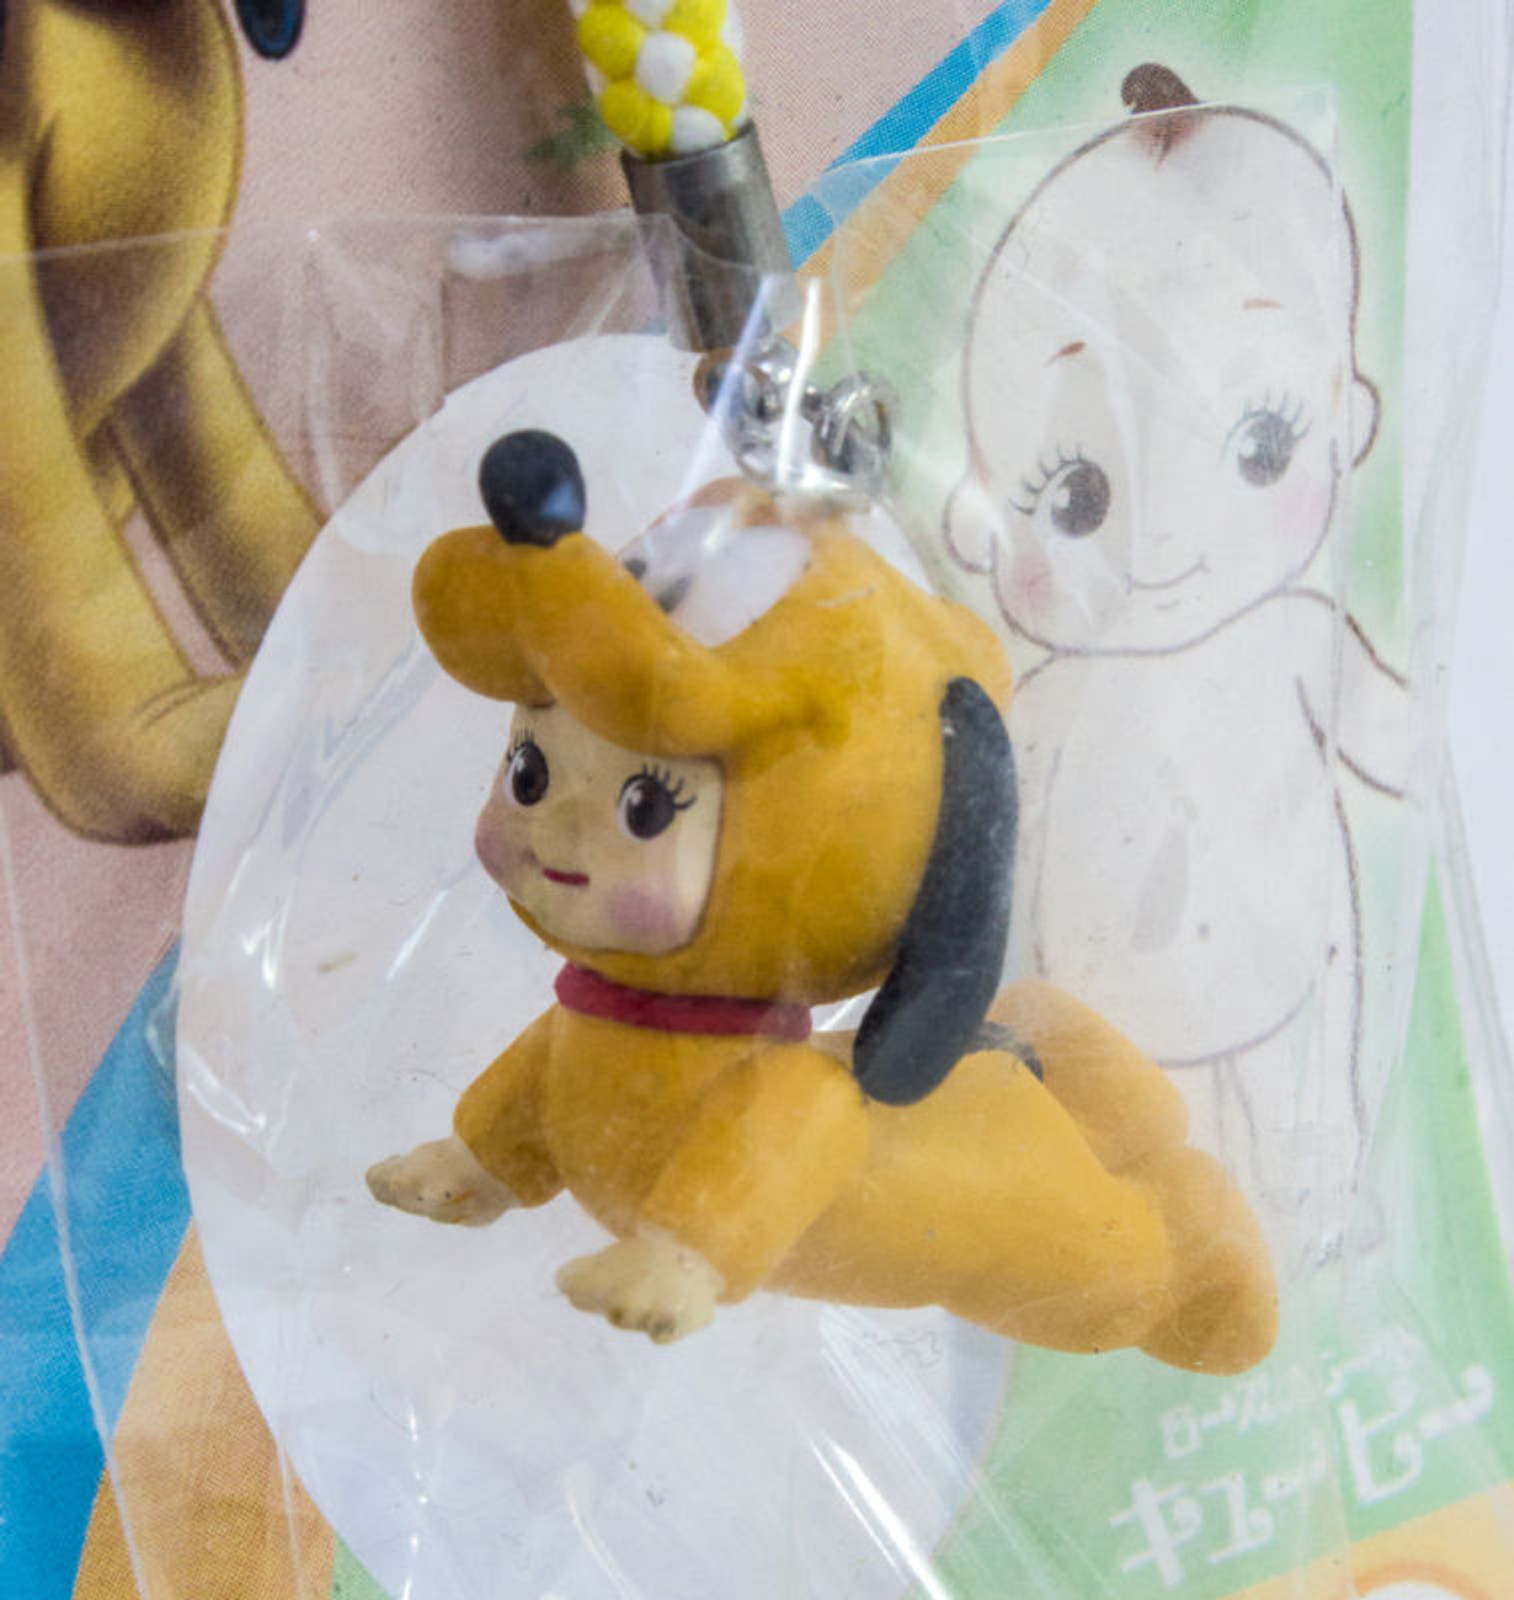 Disney Pluto Rose O'neill Kewpie Kewsion Strap JAPAN ANIME